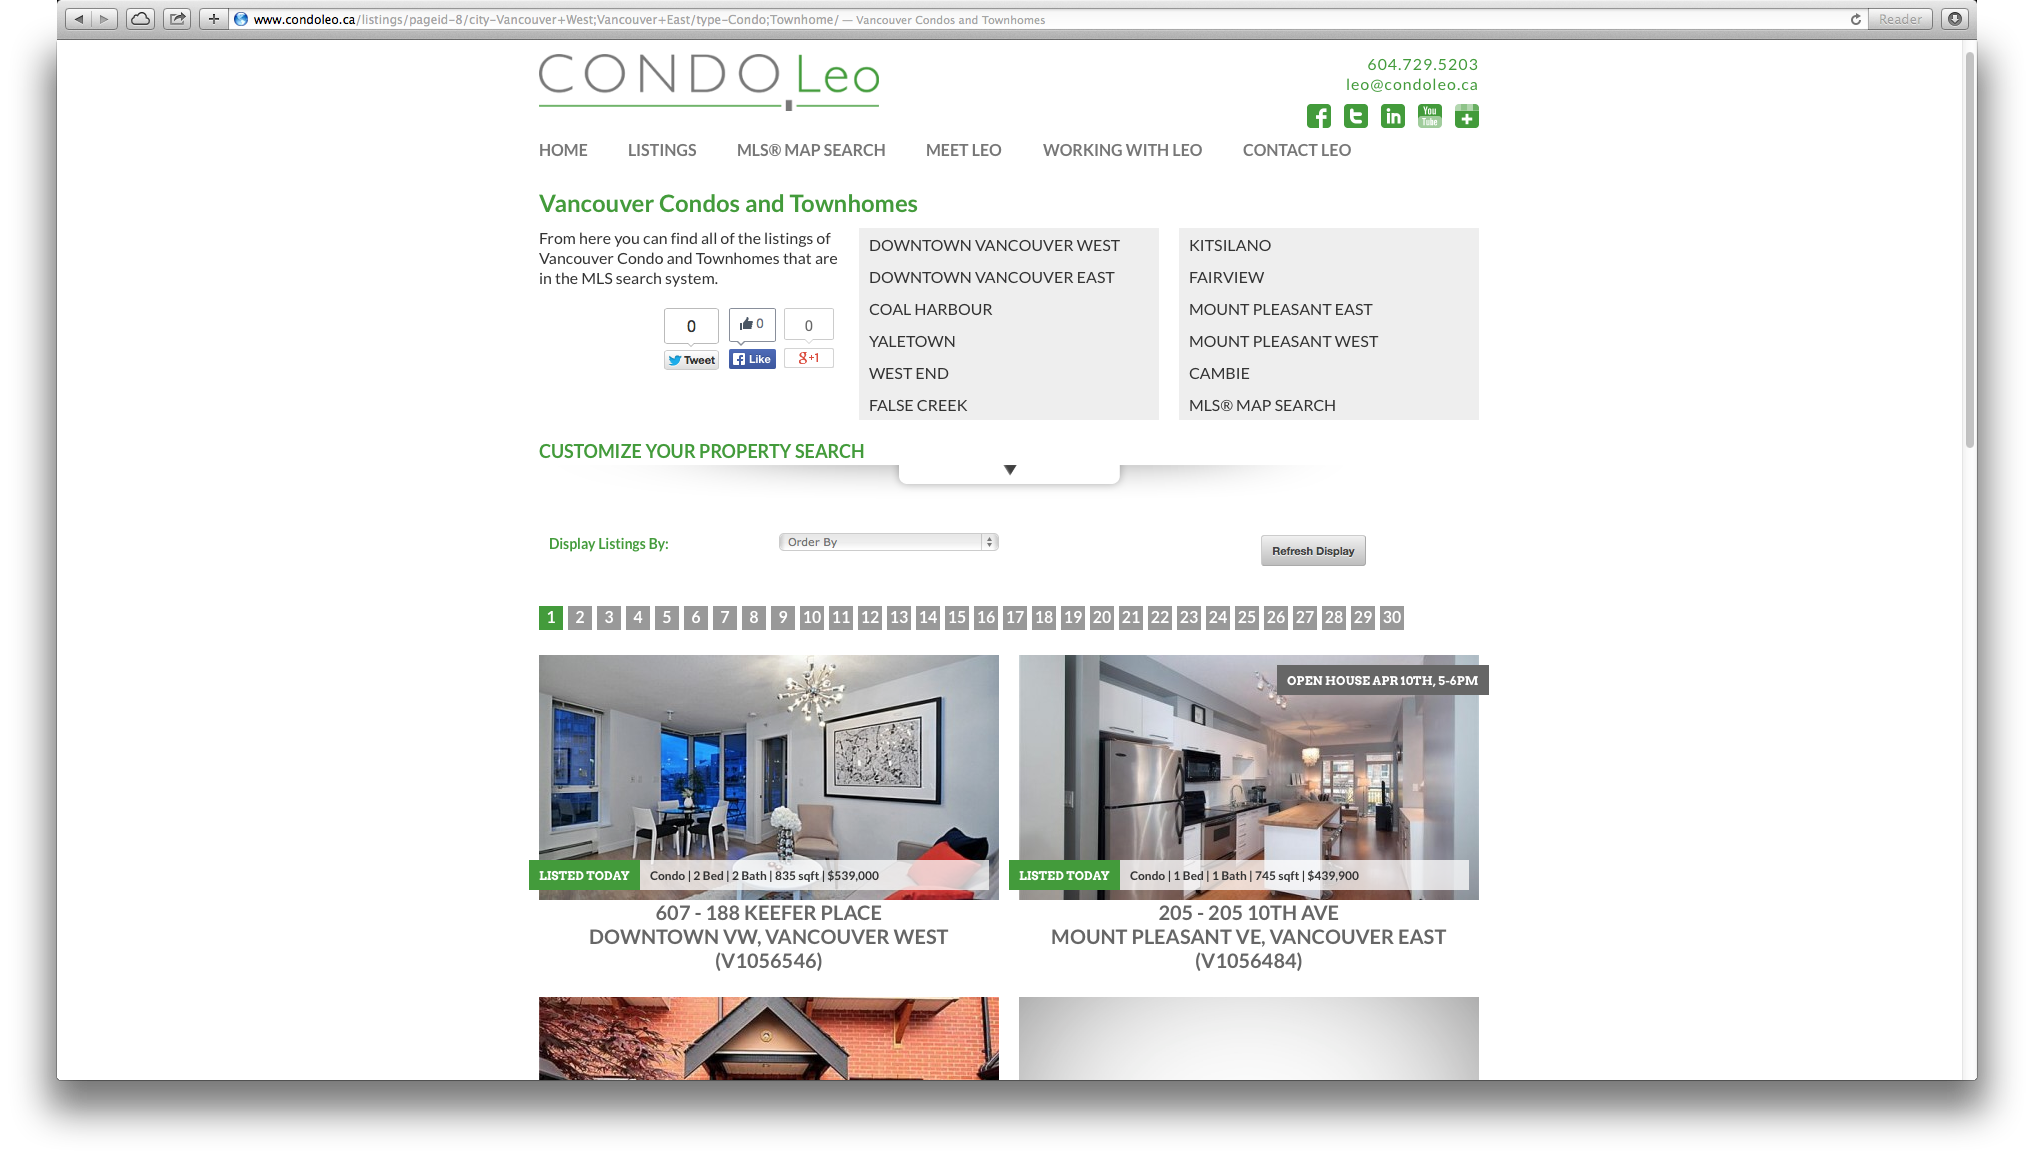 Downtown Vancouver Condo Listings With Upcoming Open Houses